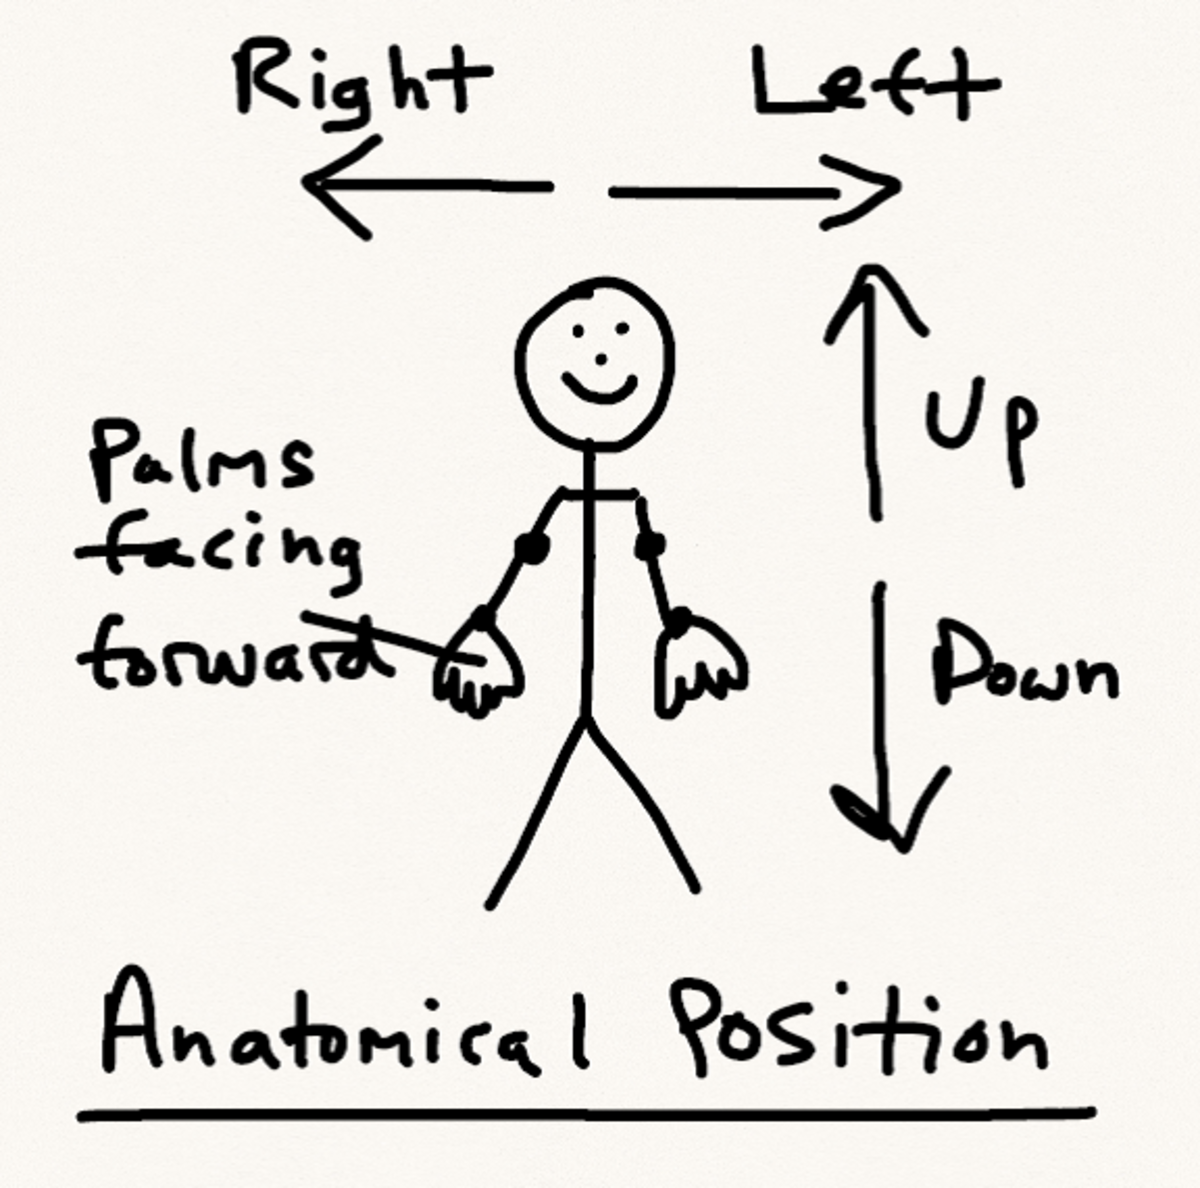 Anatomical Position schematic